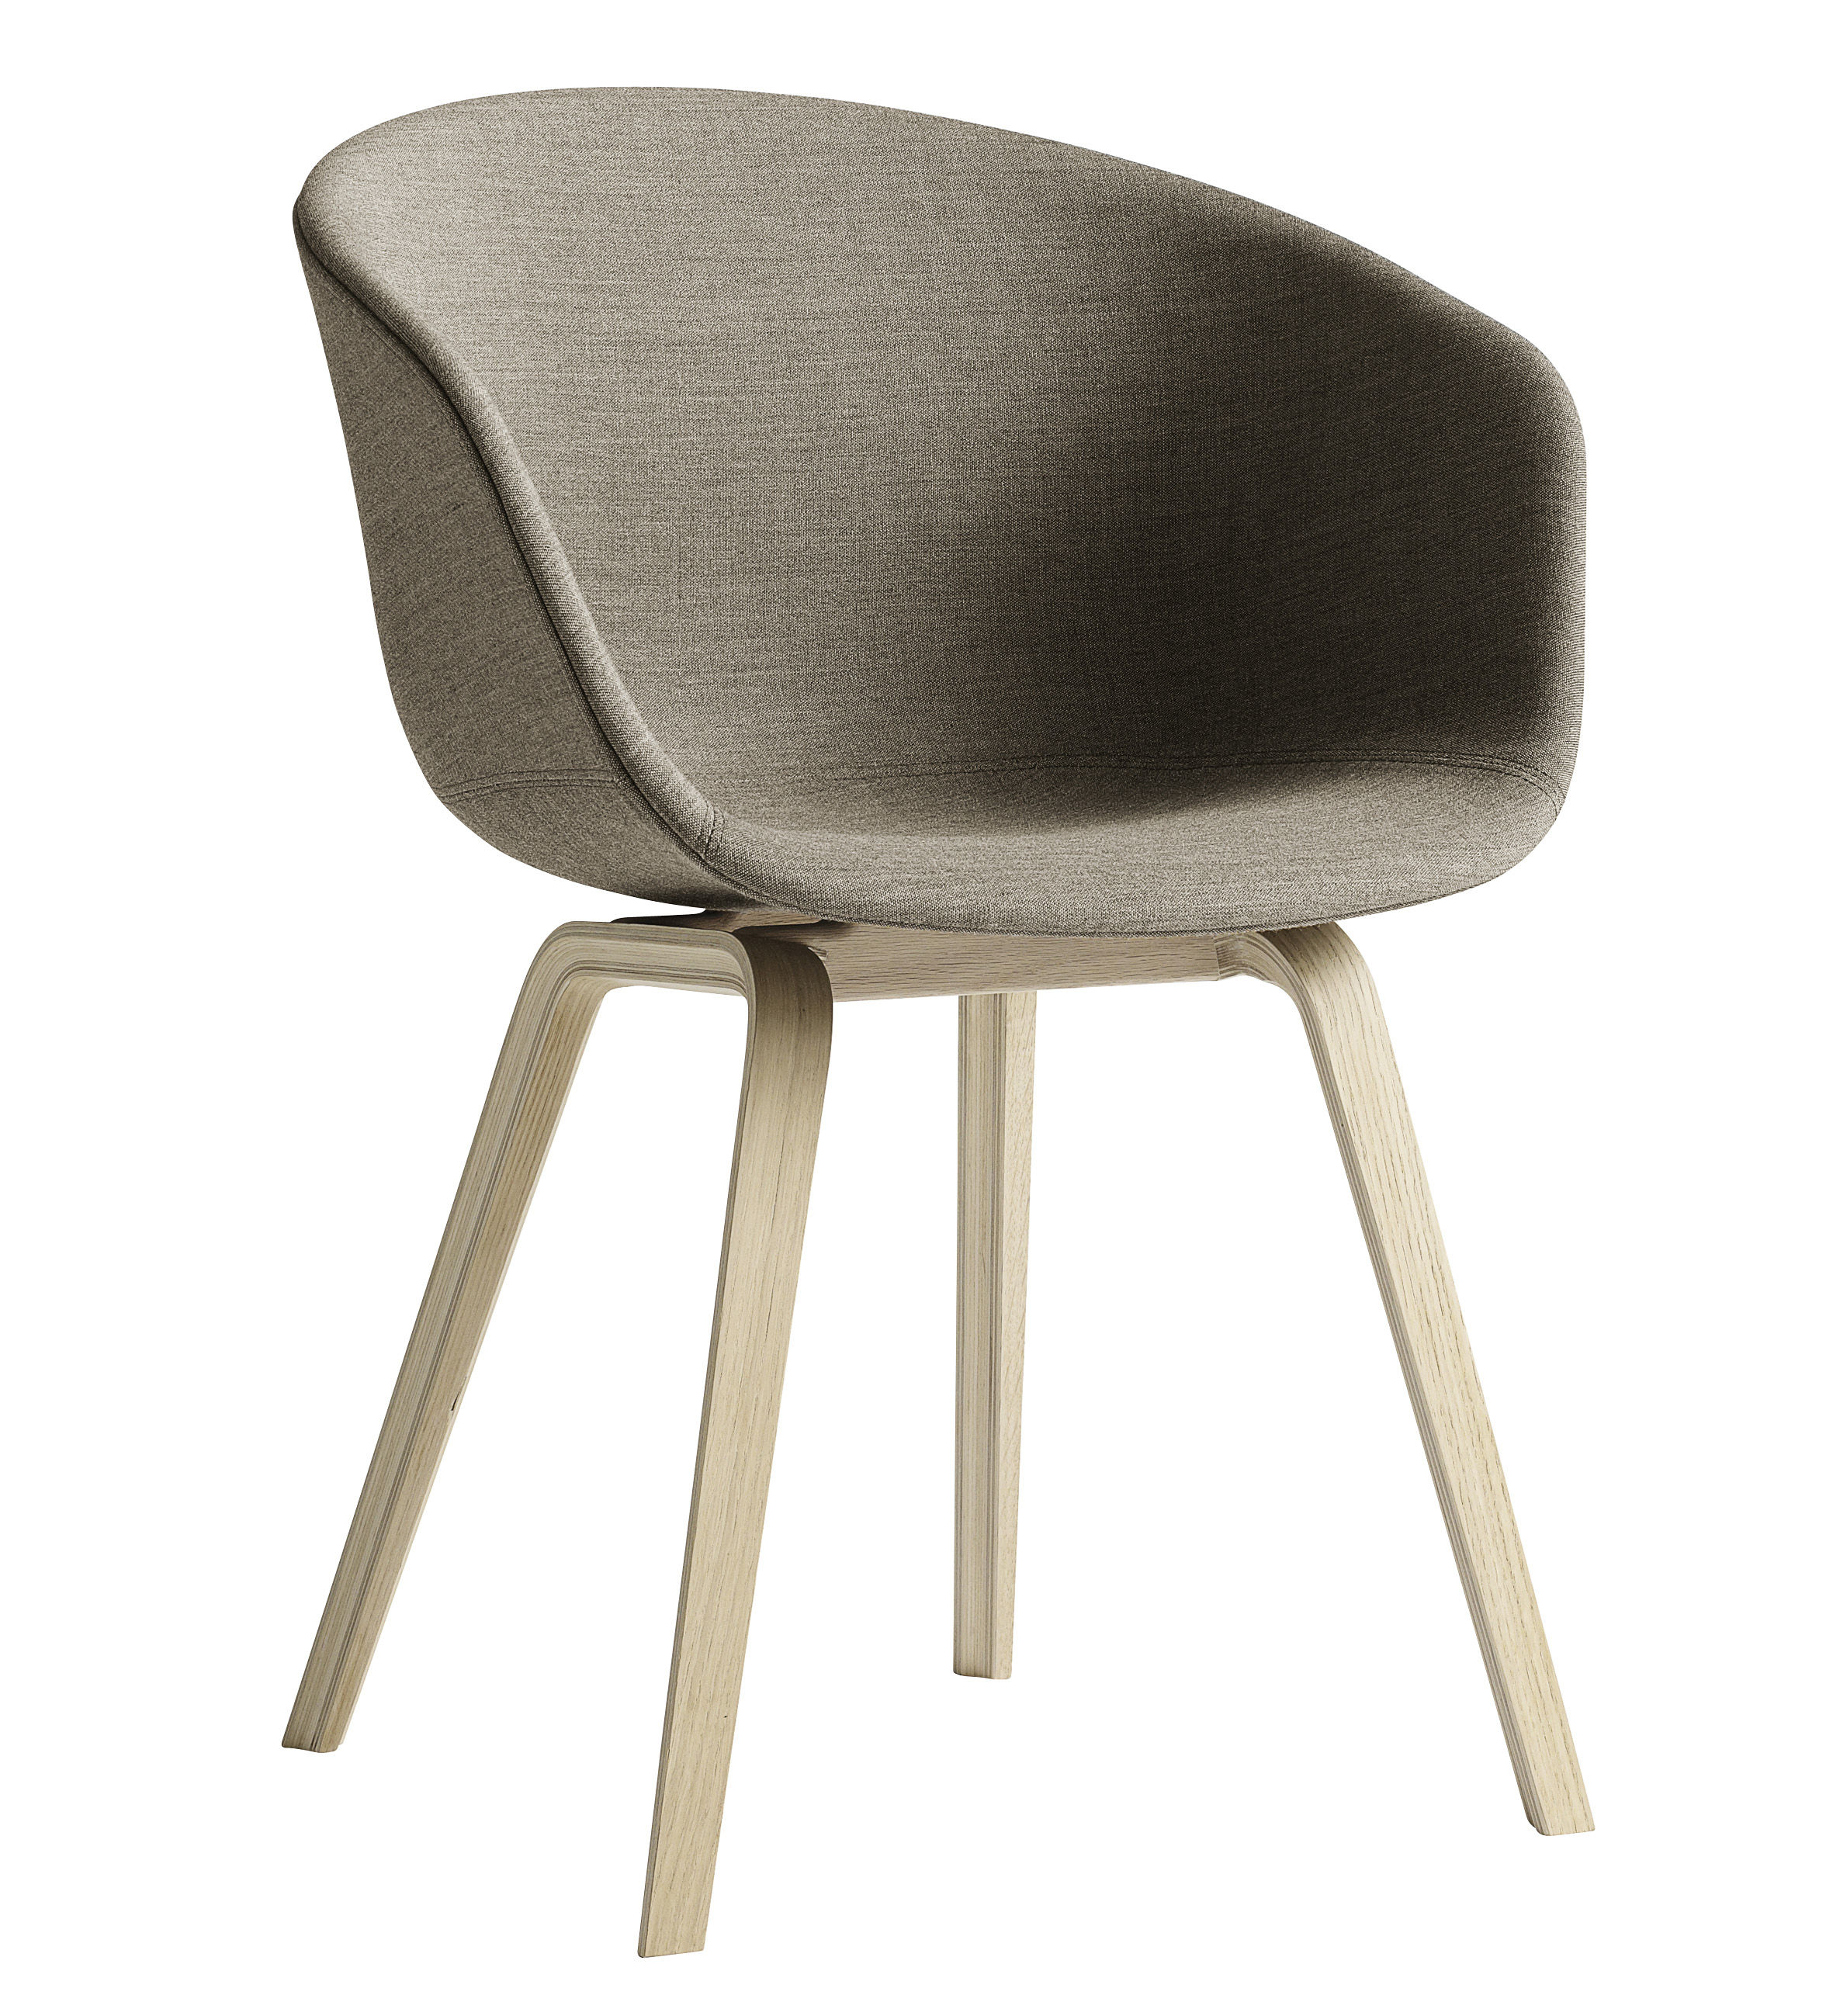 Furniture - Chairs - About a chair AAC23 Padded armchair - 4 legs /Full fabric by Hay - Beige / Natural oak feet - , Fabric, Foam, Polypropylene